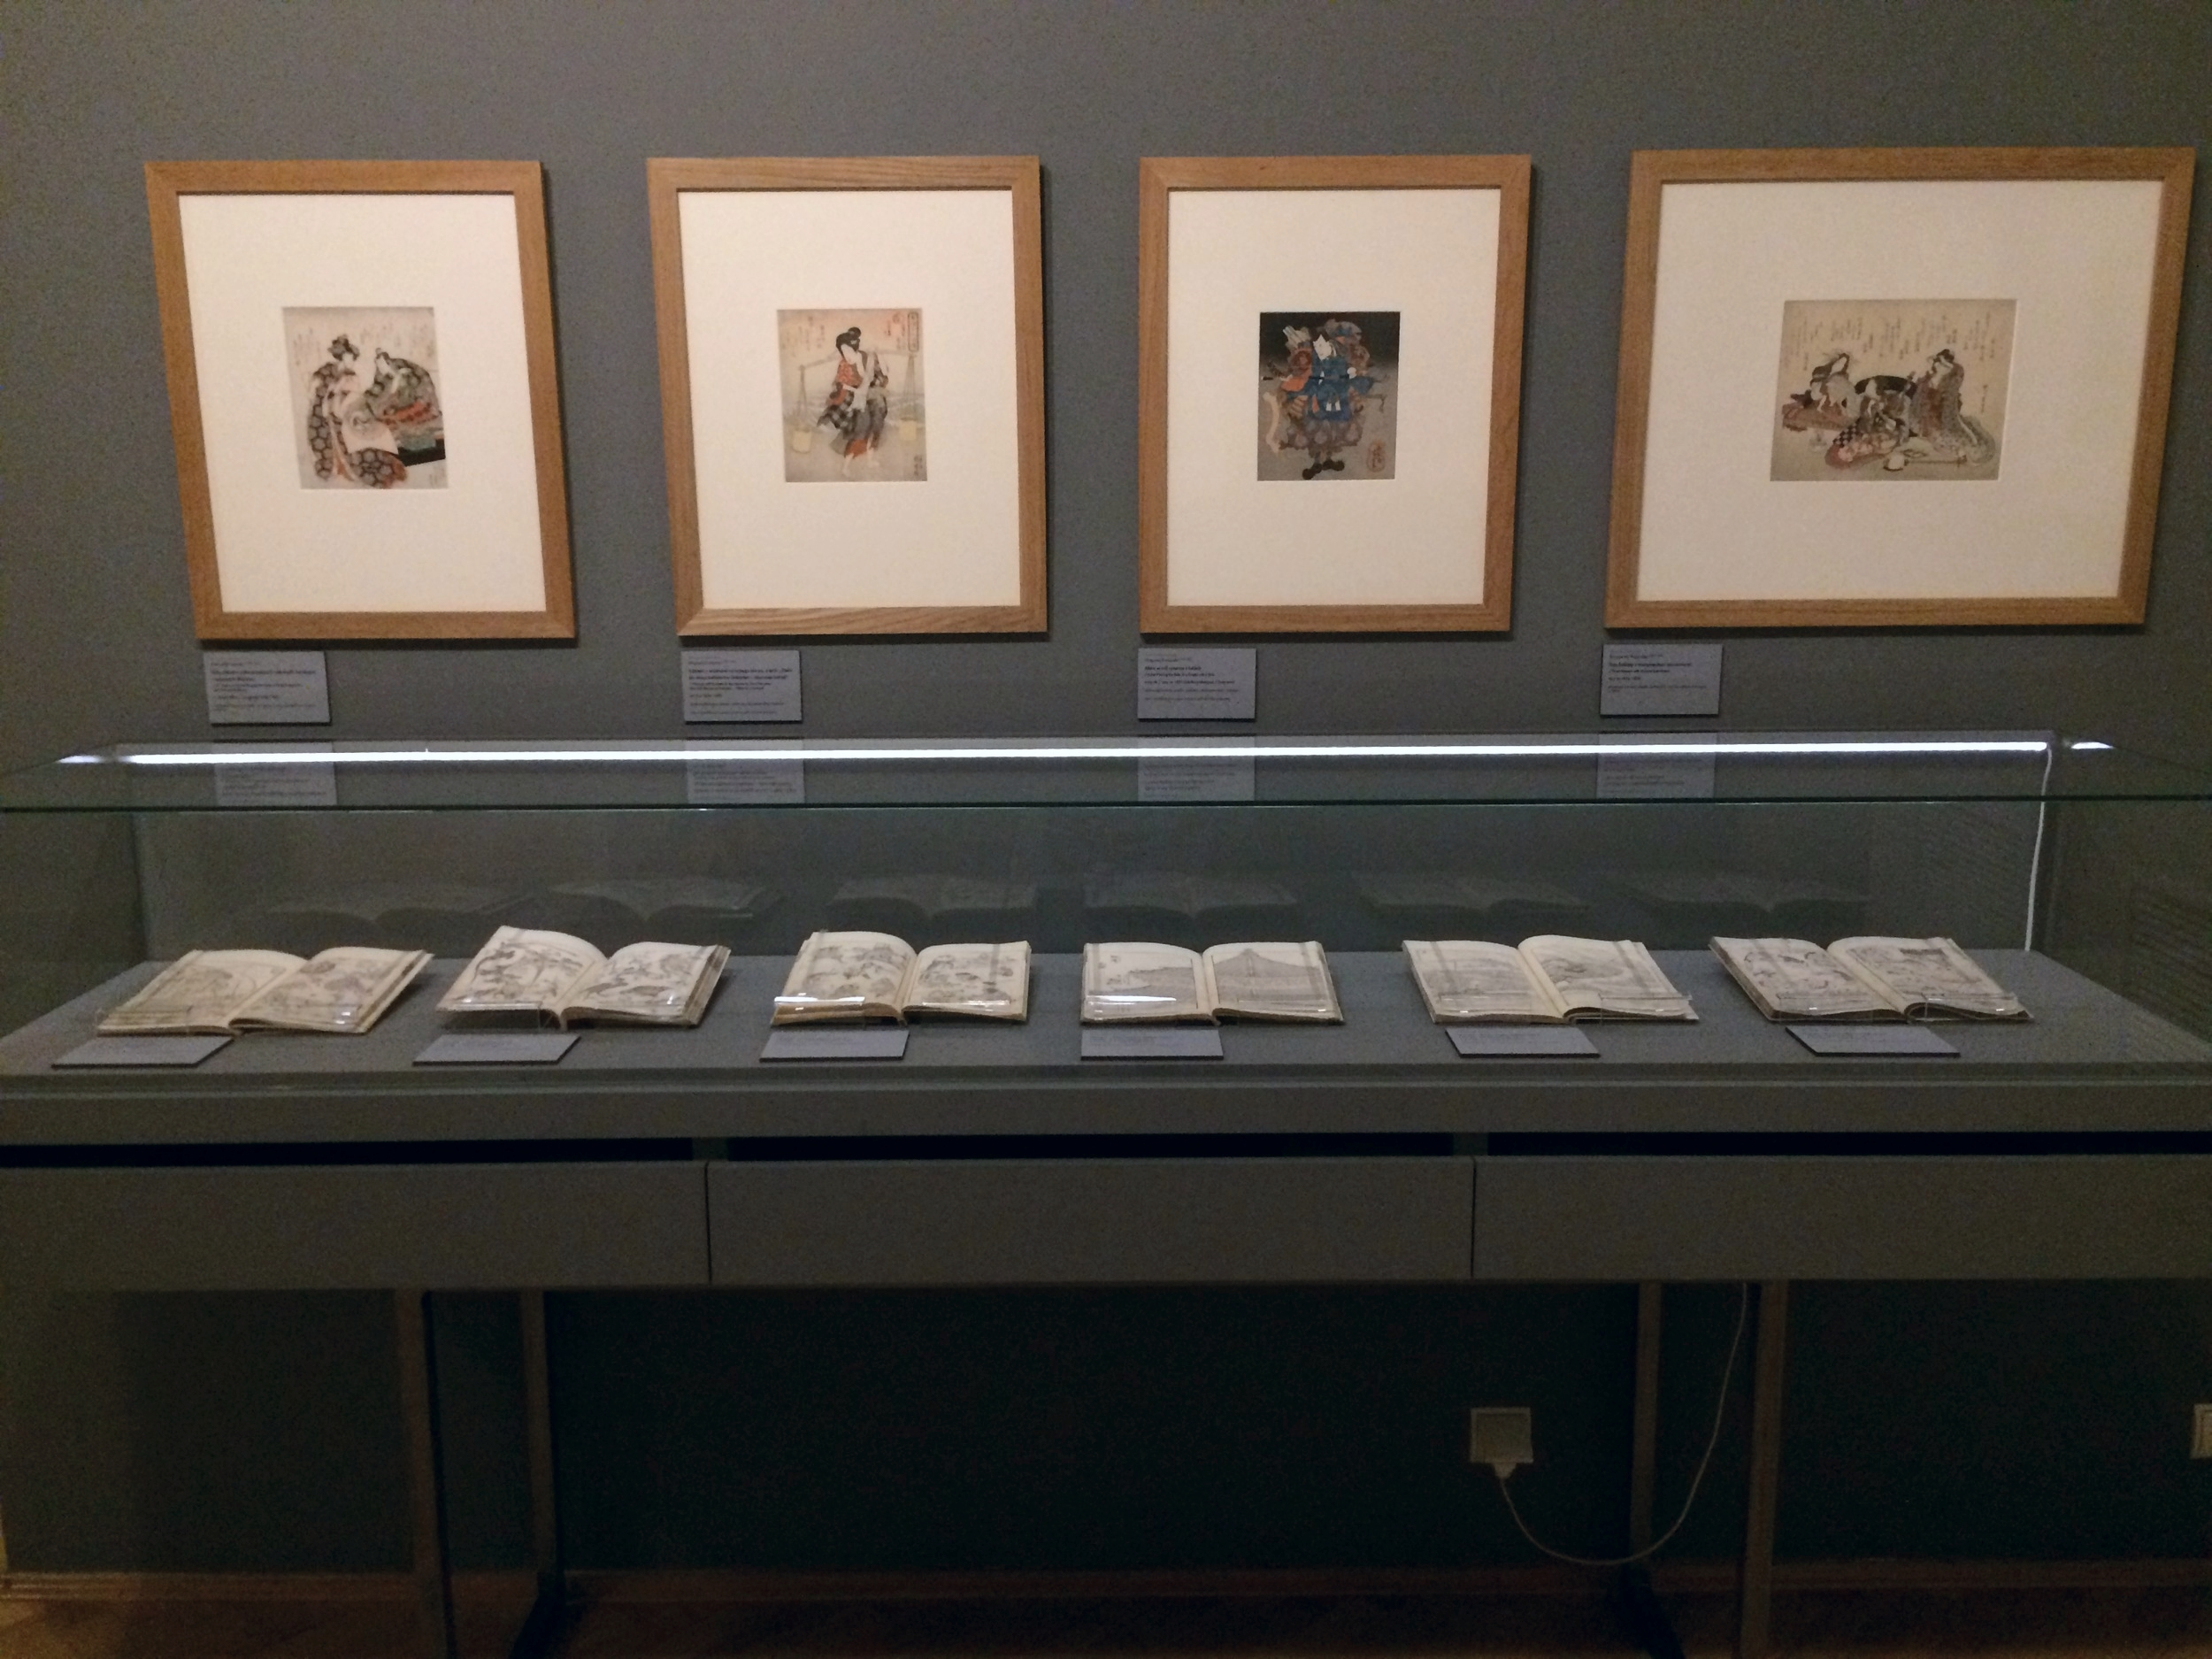 Jasienski's collection of of mangas all hand made, wood block prints. I was very shocked (in a good way) to see such an interesting collection books.   Seeing these works made me think about traditional art making process that are very old and yet prevalent in Japanese comics today.